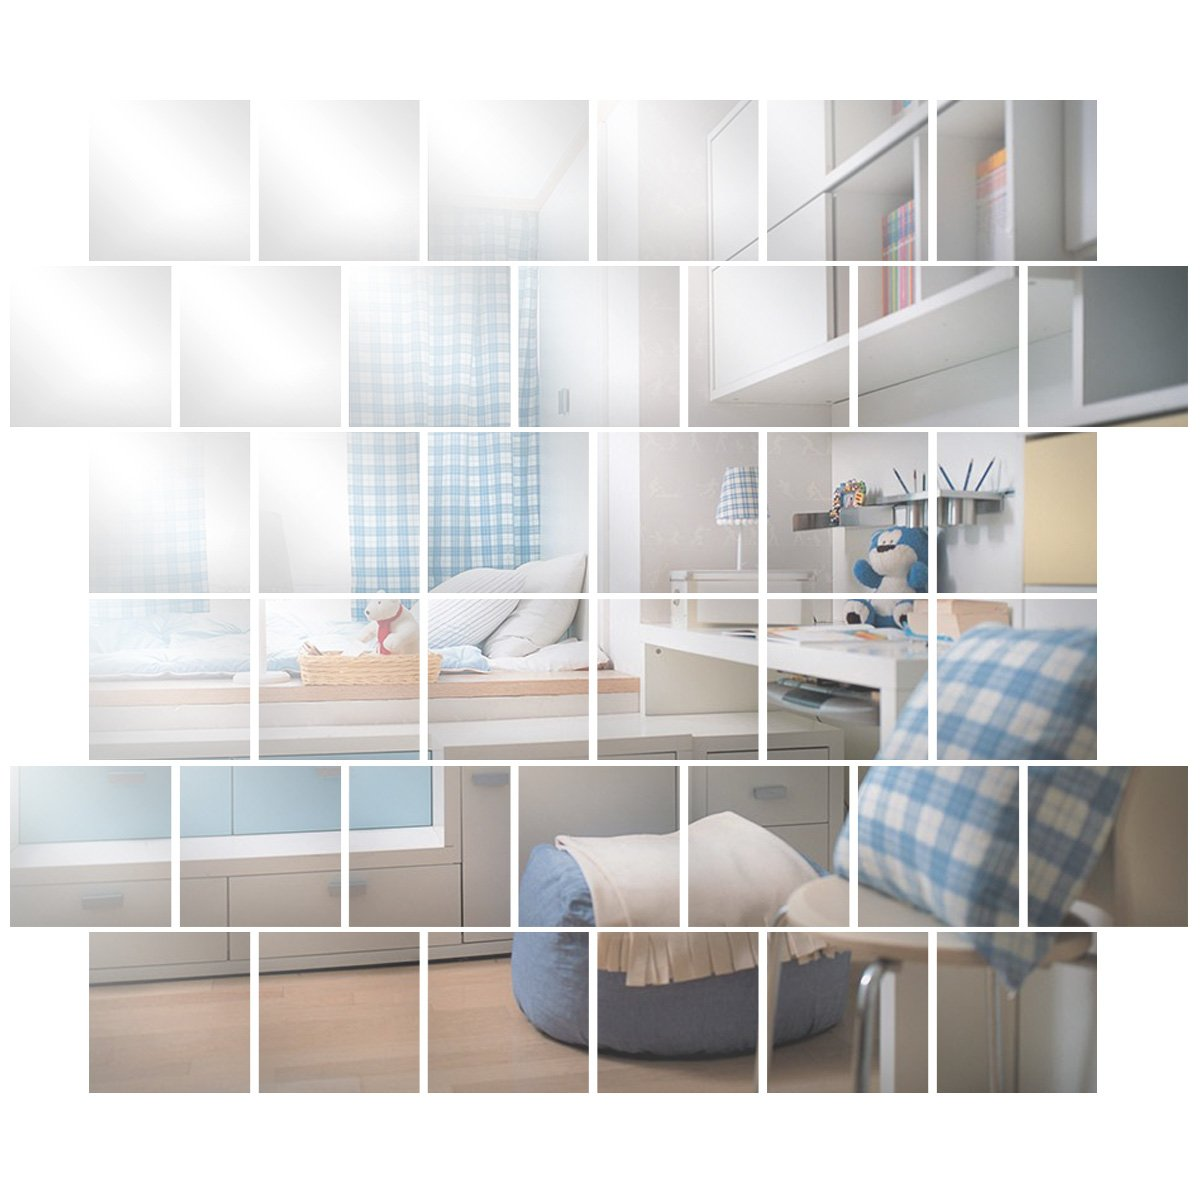 32pcs Self Adhesive Mirror Tiles Kitchen Wall Sticker Stick on 0.2/mm Decor SurePromise Limited EXPSFD011772